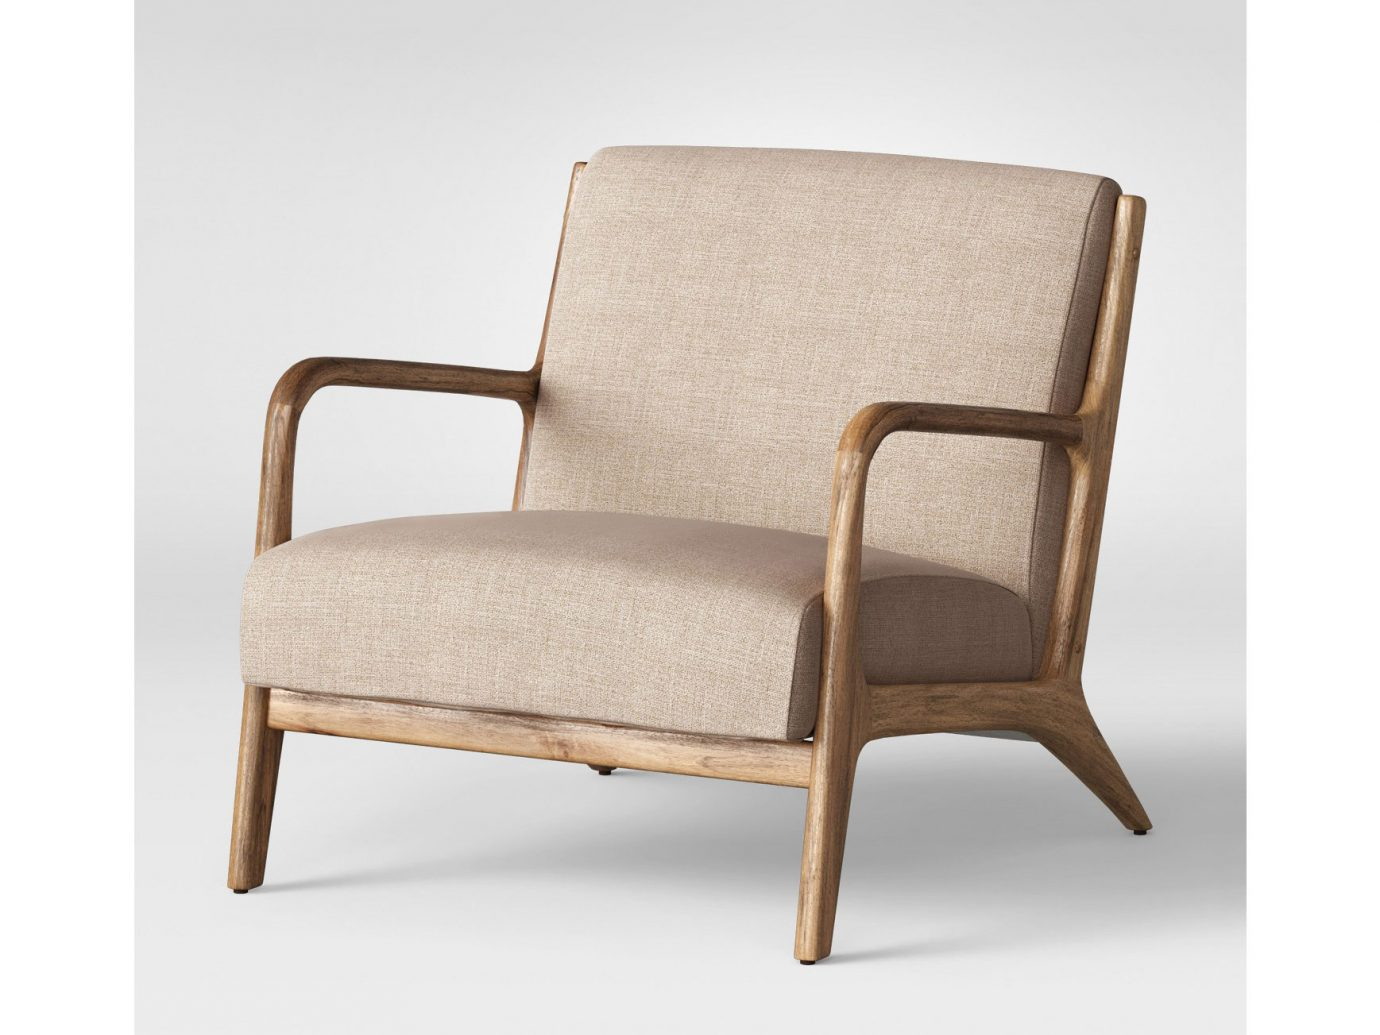 Esters Wood Arm Chair, mid century accent chair from target